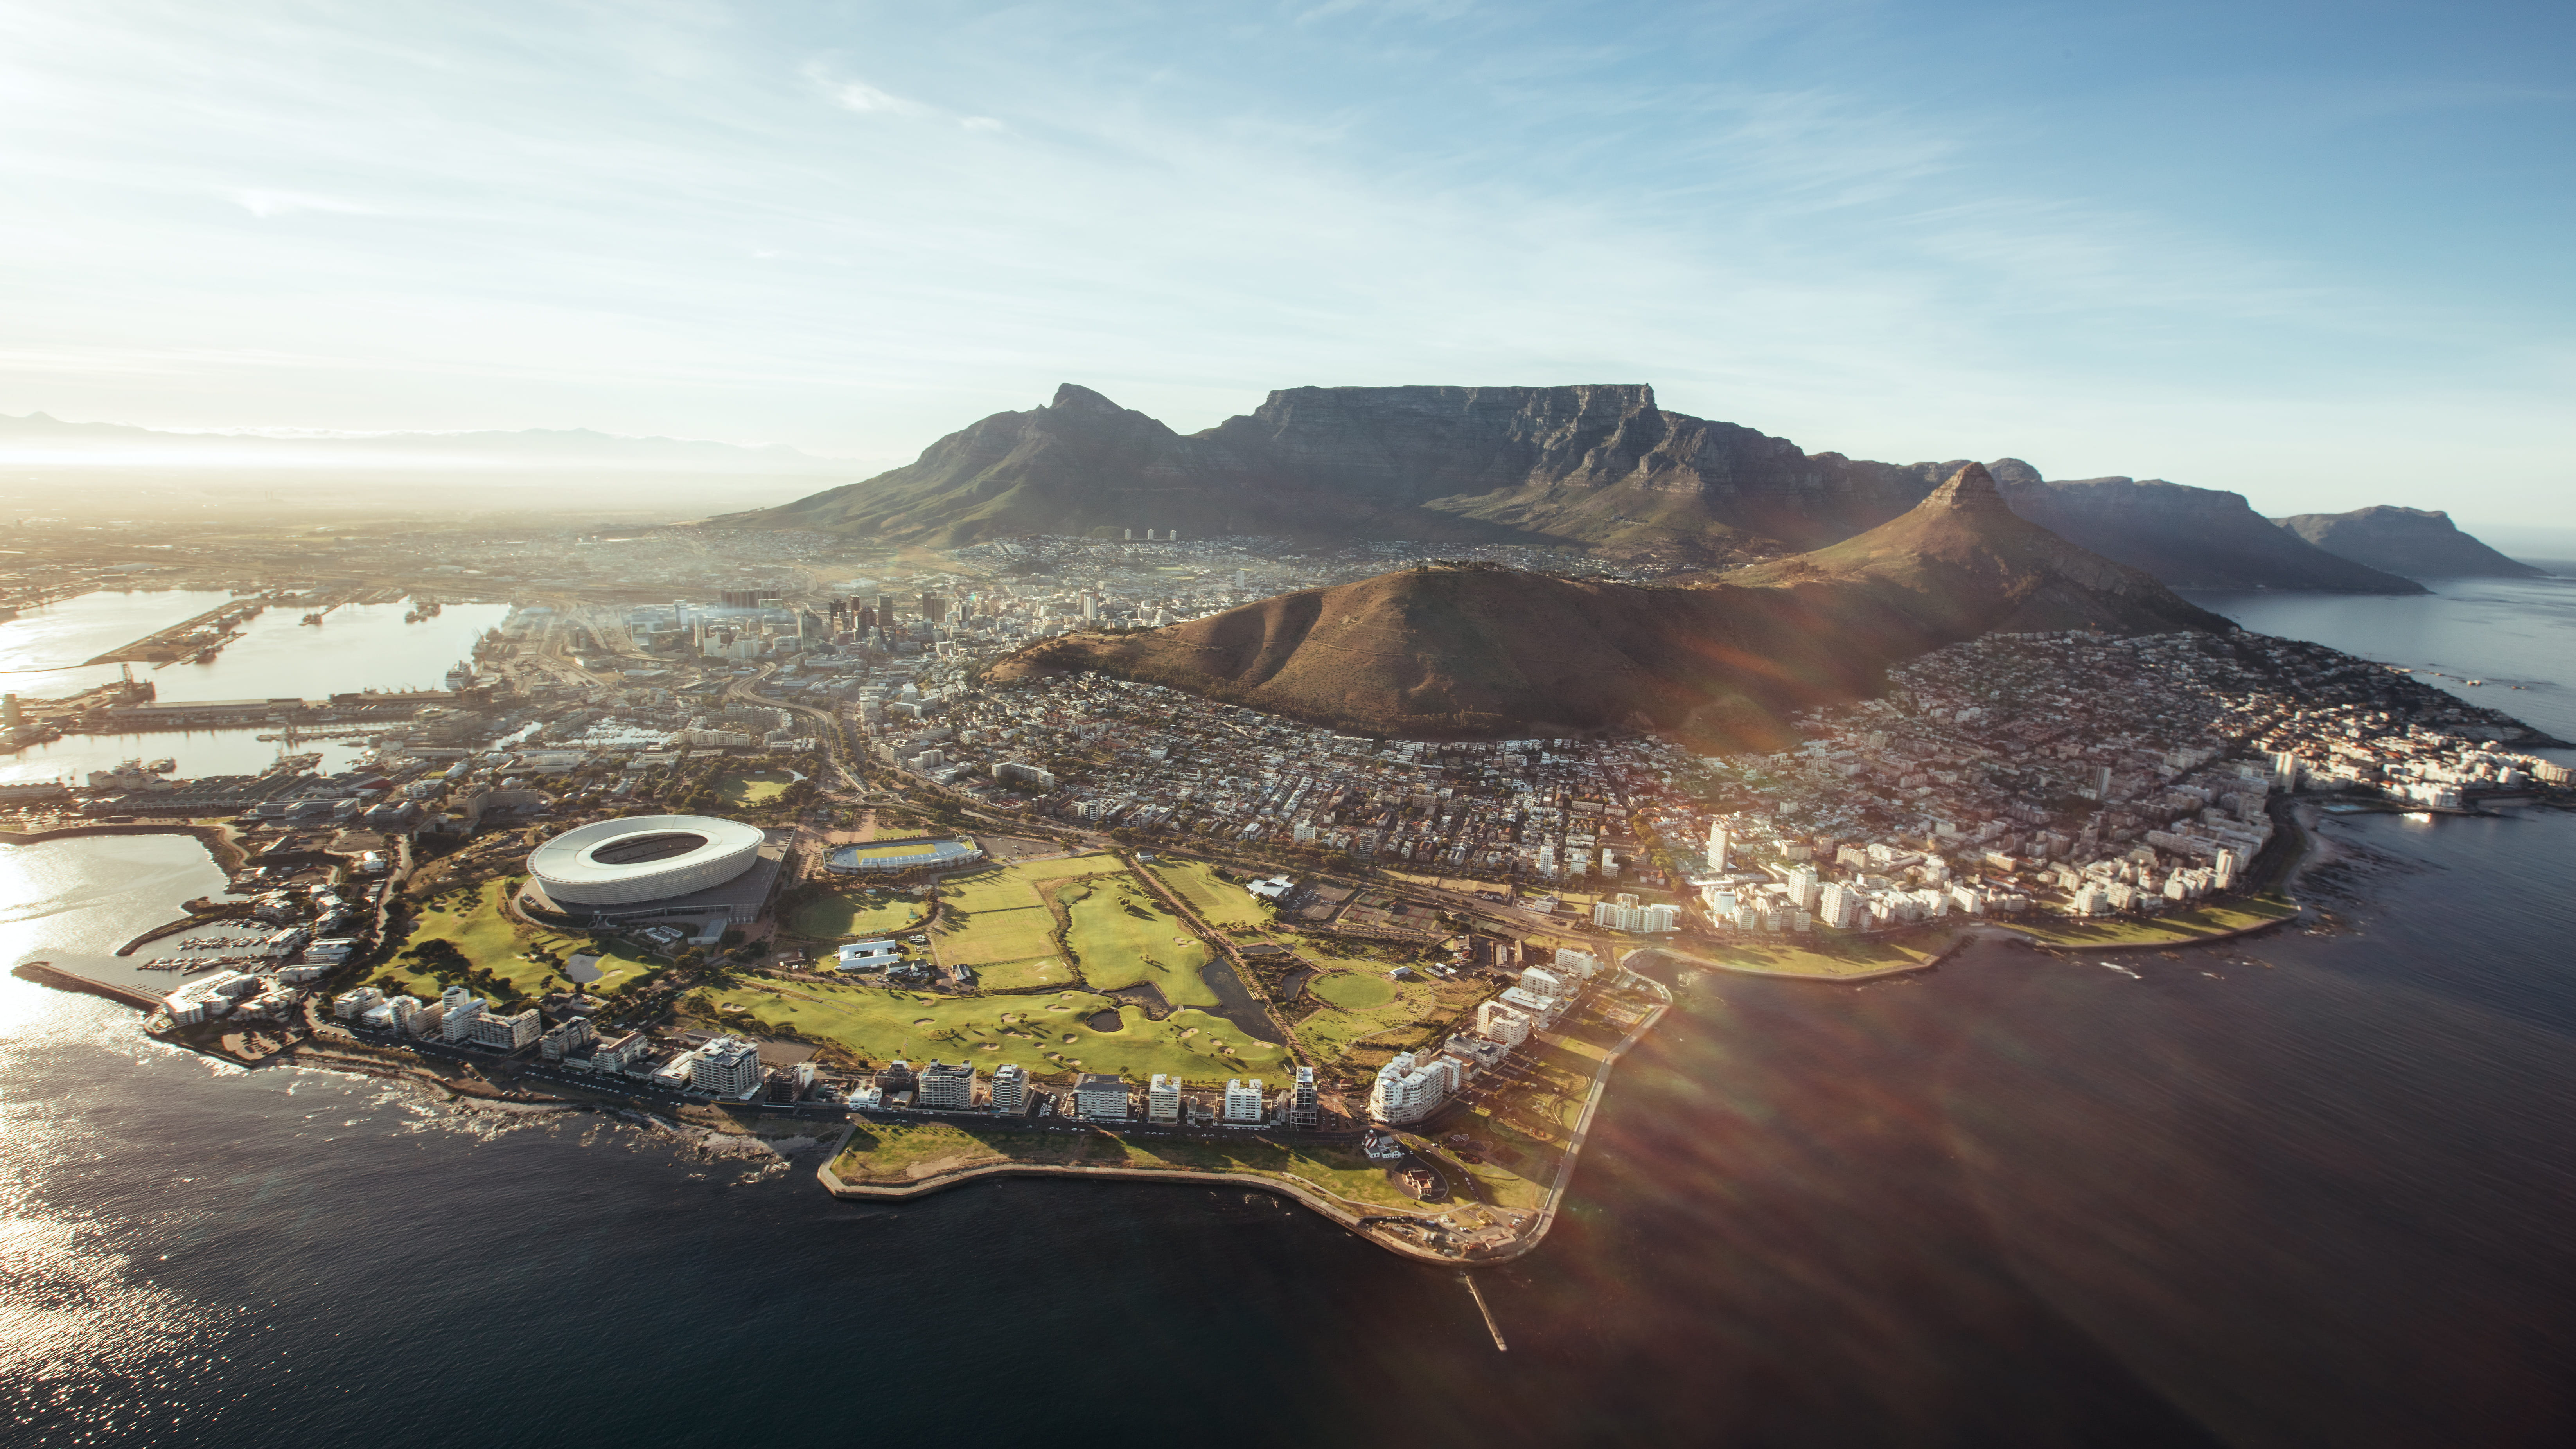 View of Cape Town,with Cape Town Stadium, built for the 2010 World Cup, in the foreground.